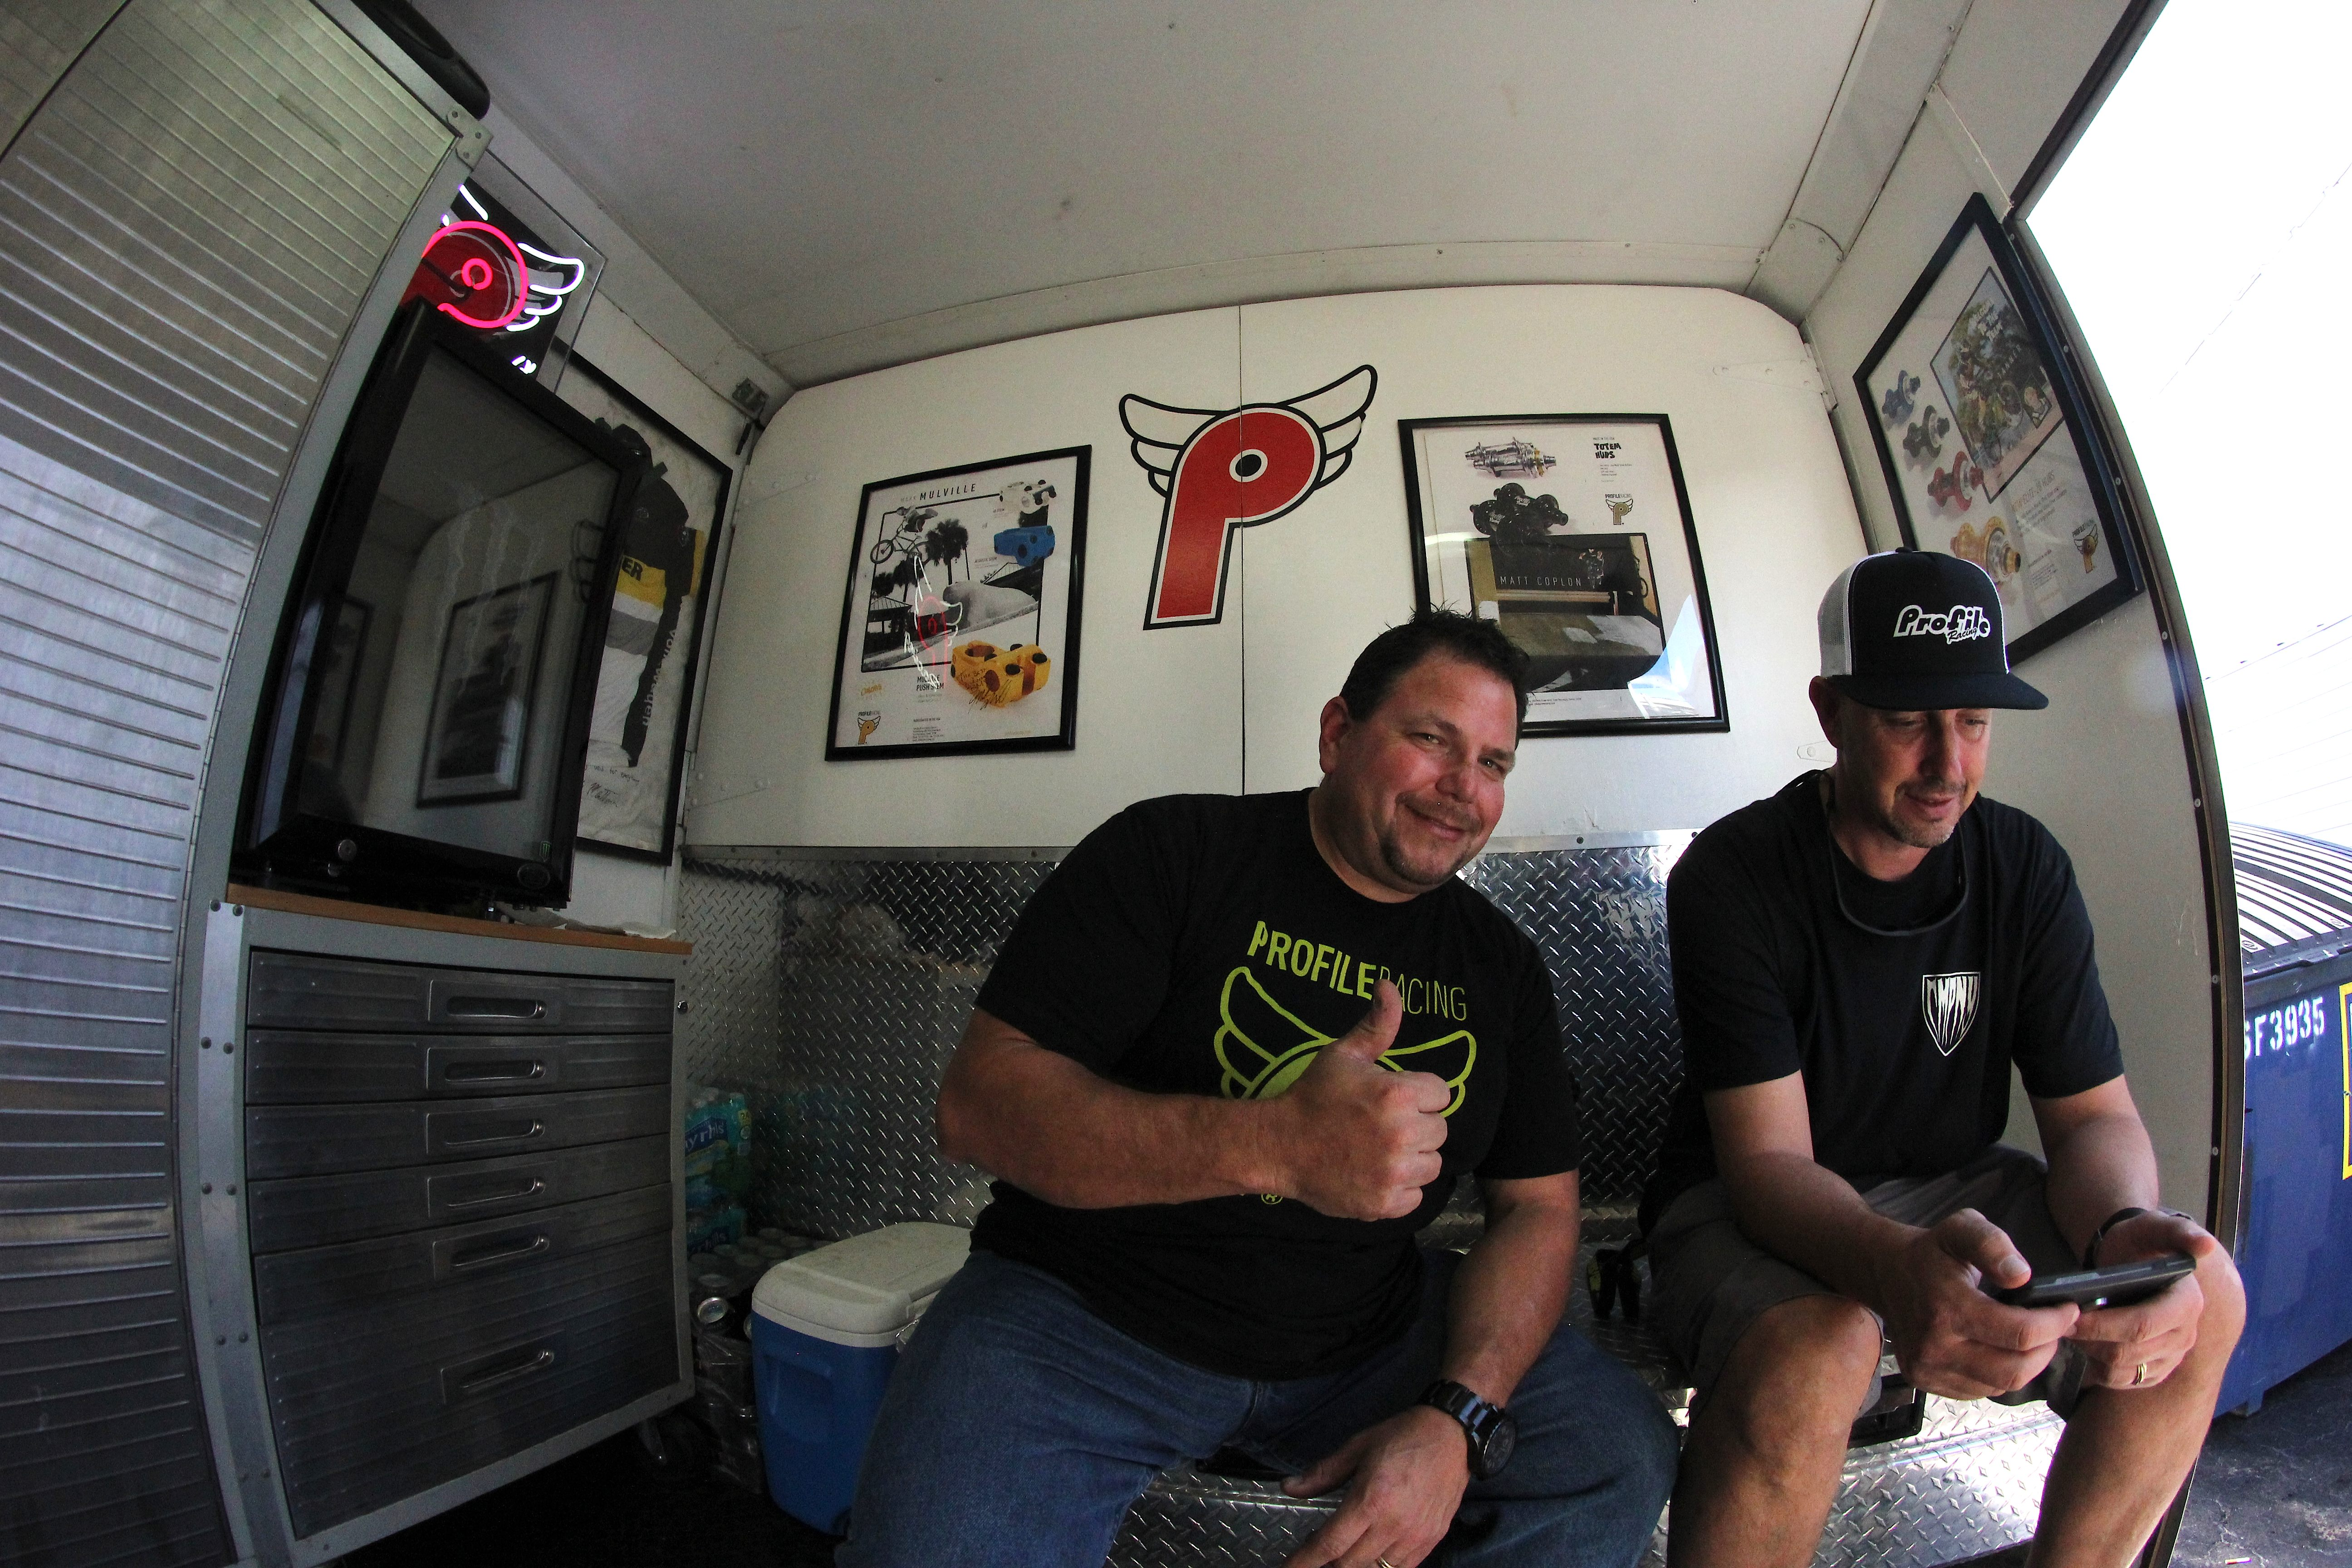 Gus Lanzilotta. One of Florida's favorites repping Profile Racing. On site mechanic fixing ANY bike that rolls through those trailer doors. Thanks for the support Gus.